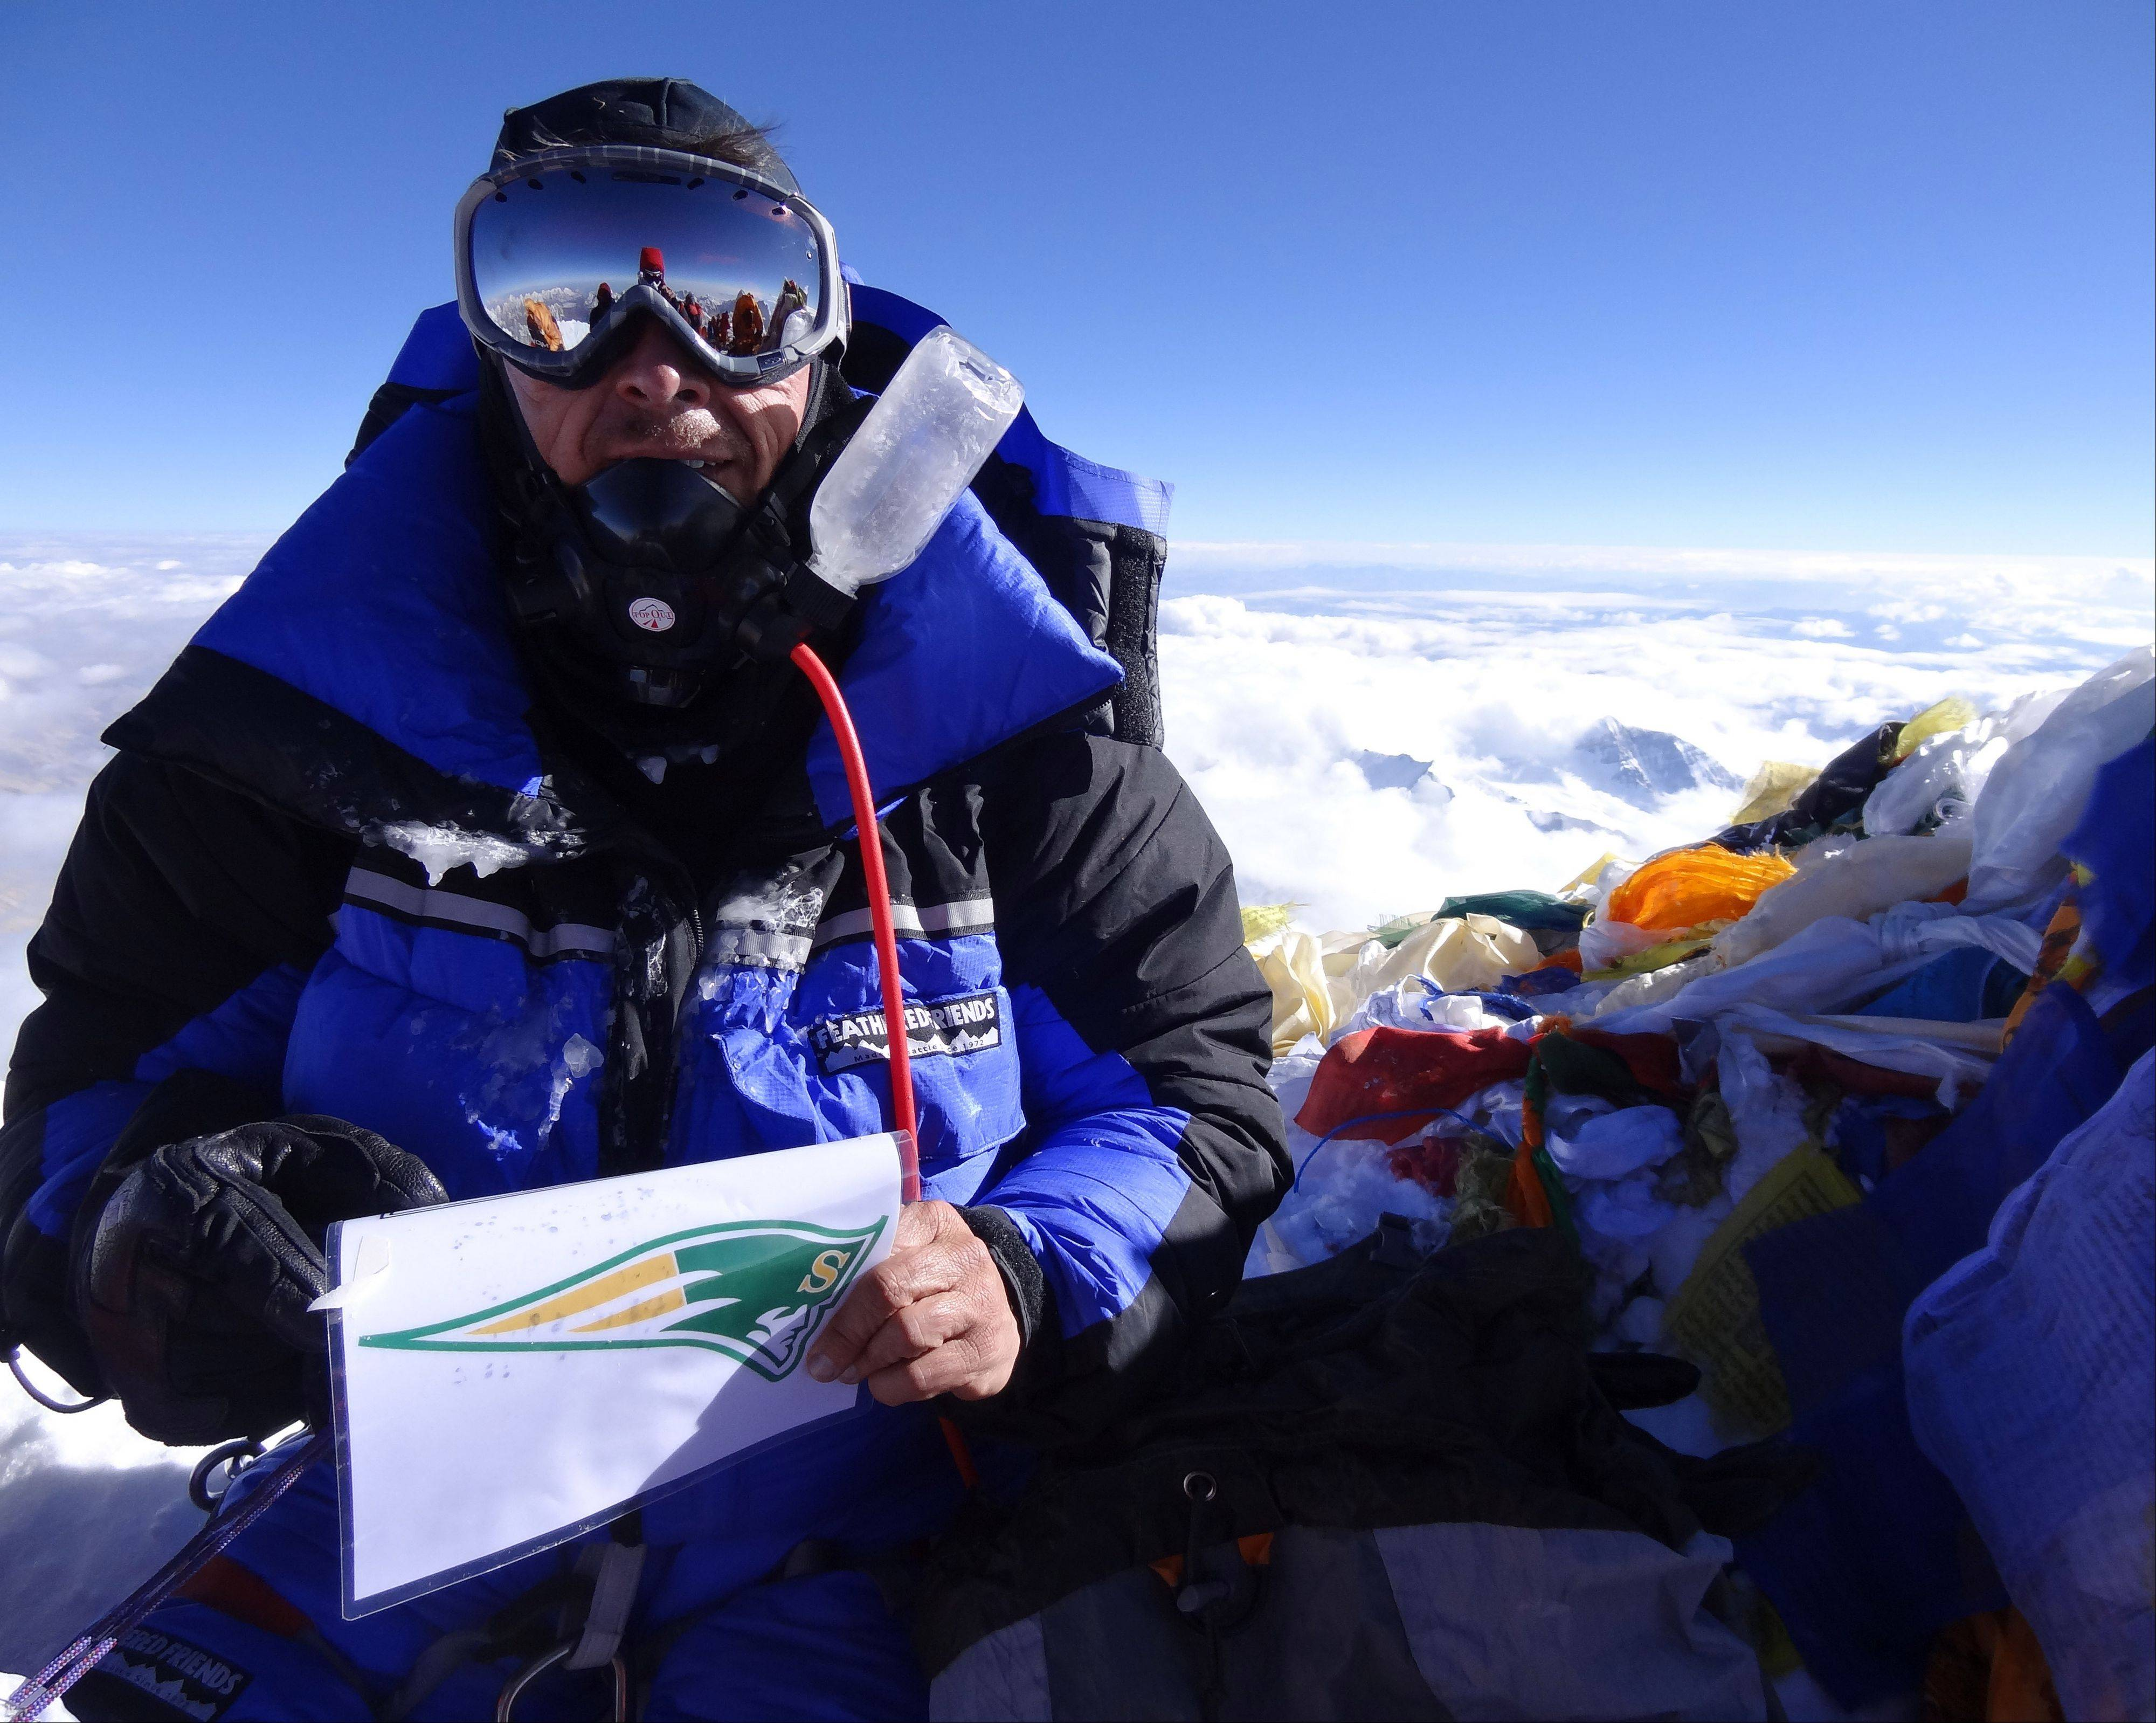 Stevenson High School graduate and Buffalo Grove native Dave Roskelley holds a laminated Stevenson High School sports logo sign which he left at the summit of Mount Everest.